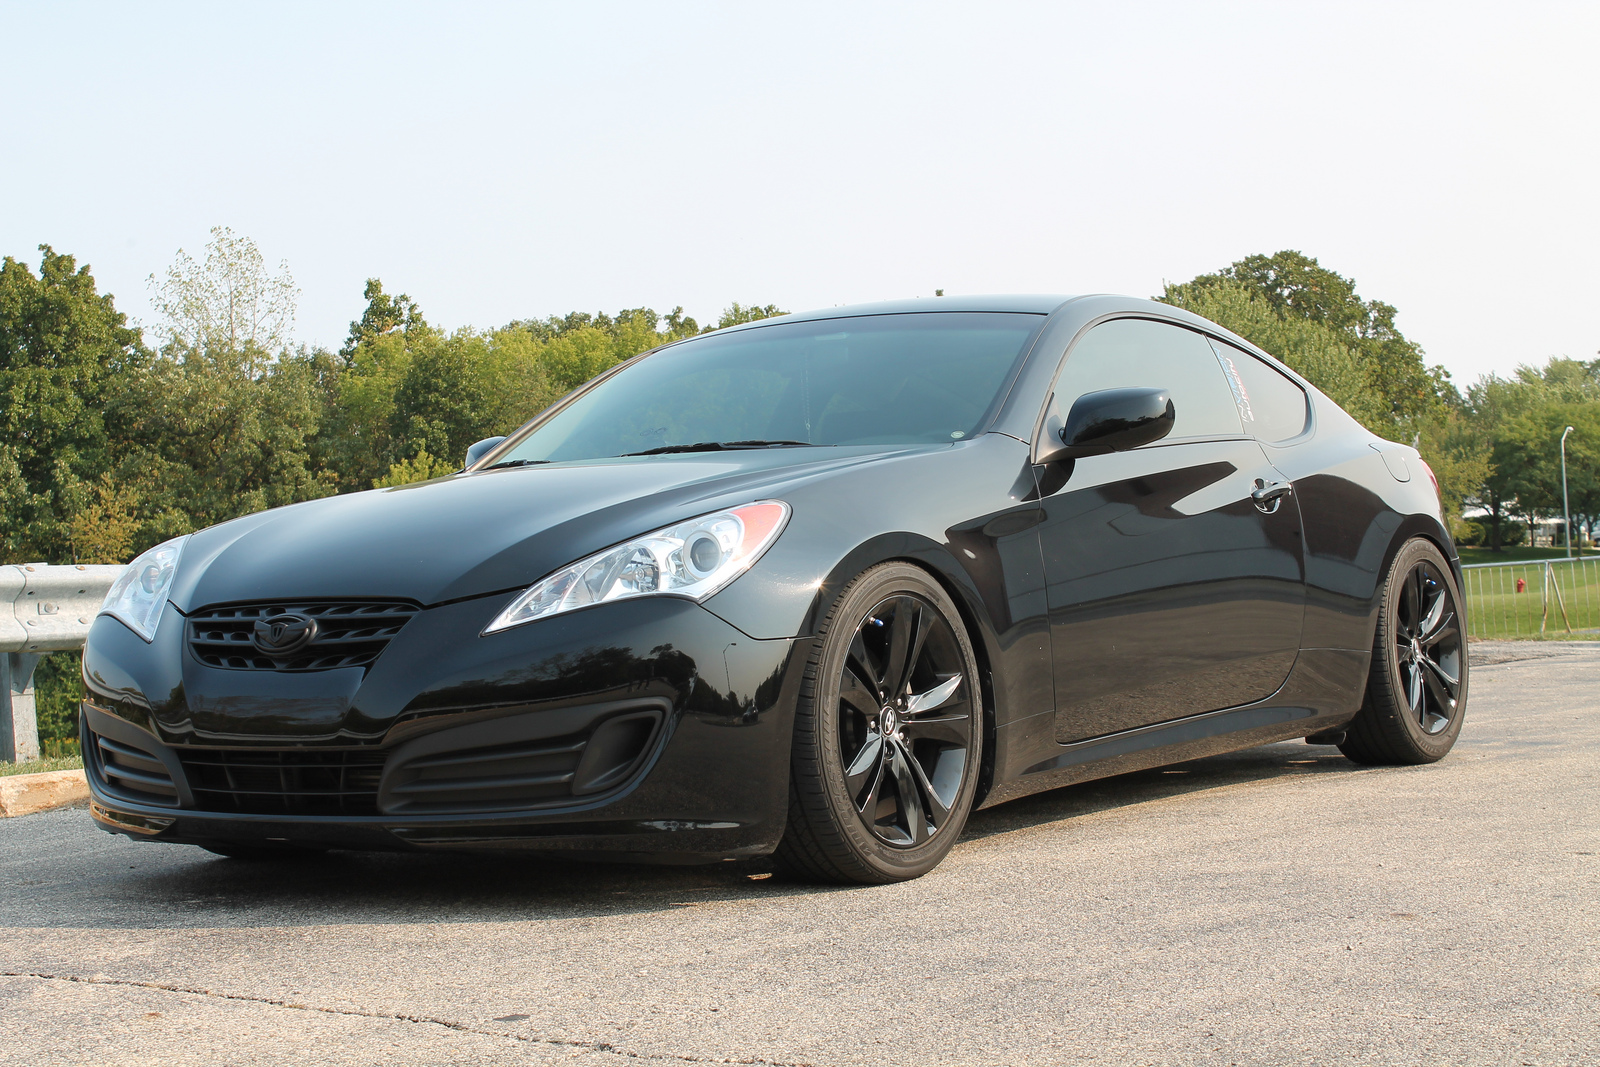 2011 hyundai genesis coupe pictures cargurus. Black Bedroom Furniture Sets. Home Design Ideas